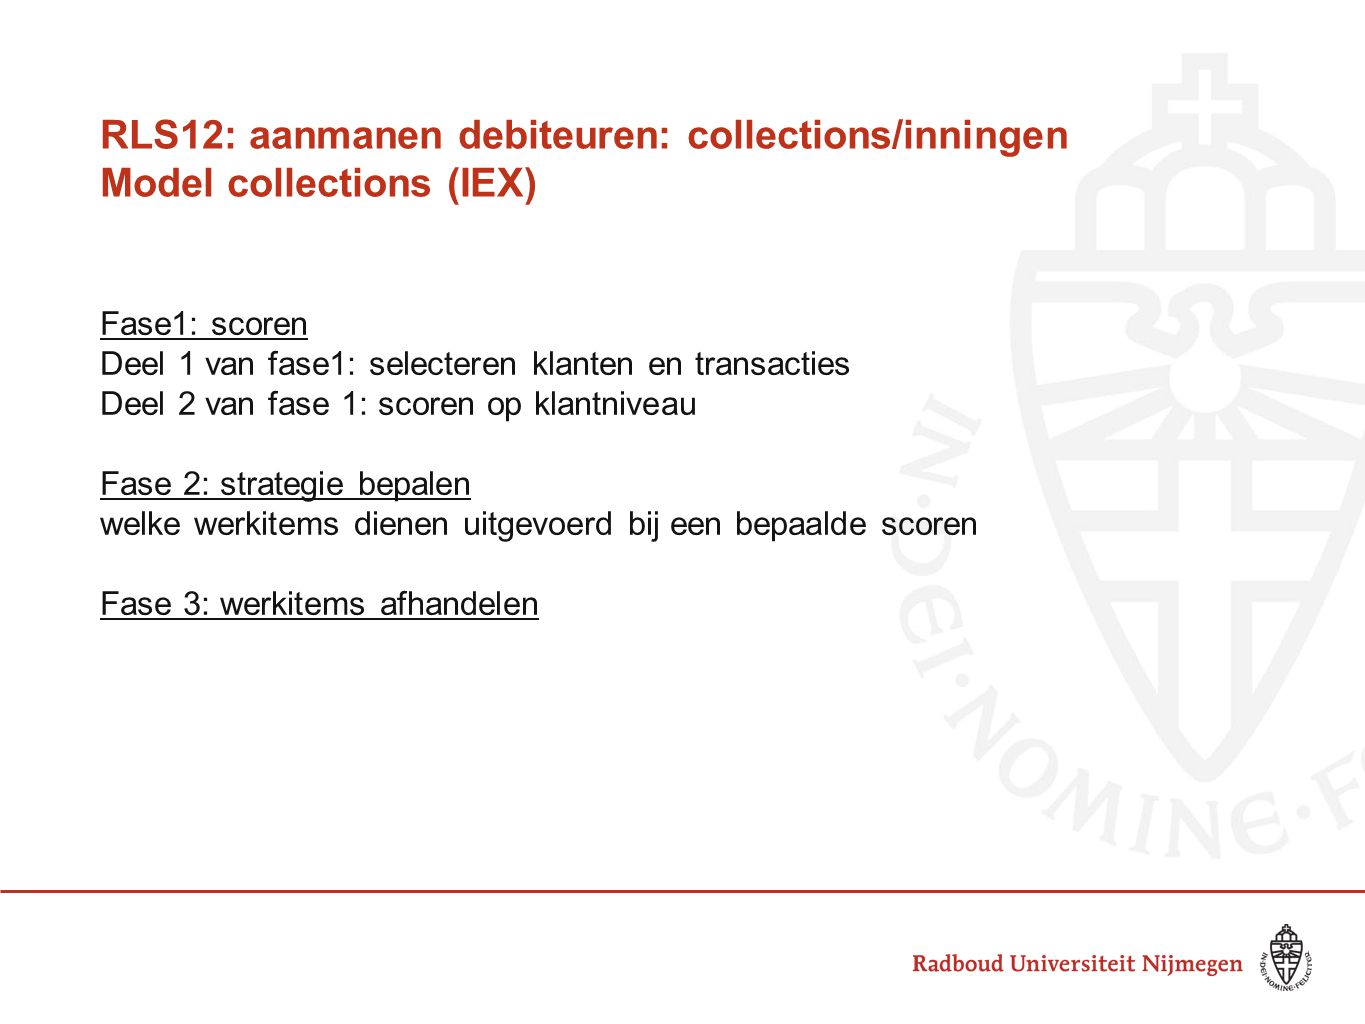 RLS12: aanmanen debiteuren: collections/inningen Model collections (IEX)